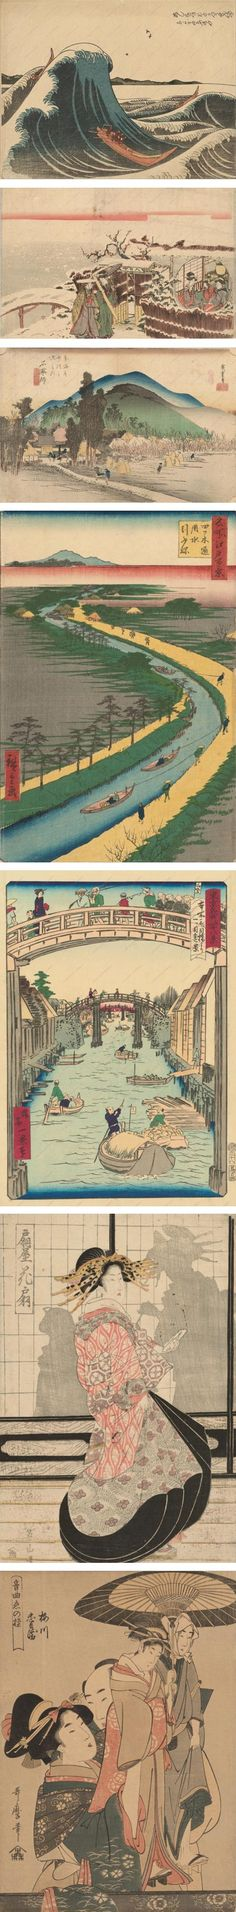 Japanese Prints from the and centuries: Katsushika Hokusai, Katsukawa Shunkō Ii, Utagawa Hirosige I, Utagawa . Art Japonais, Korean Art, Japanese Painting, Japanese Prints, Japan Art, Orient, Gravure, Woodblock Print, Chinese Art